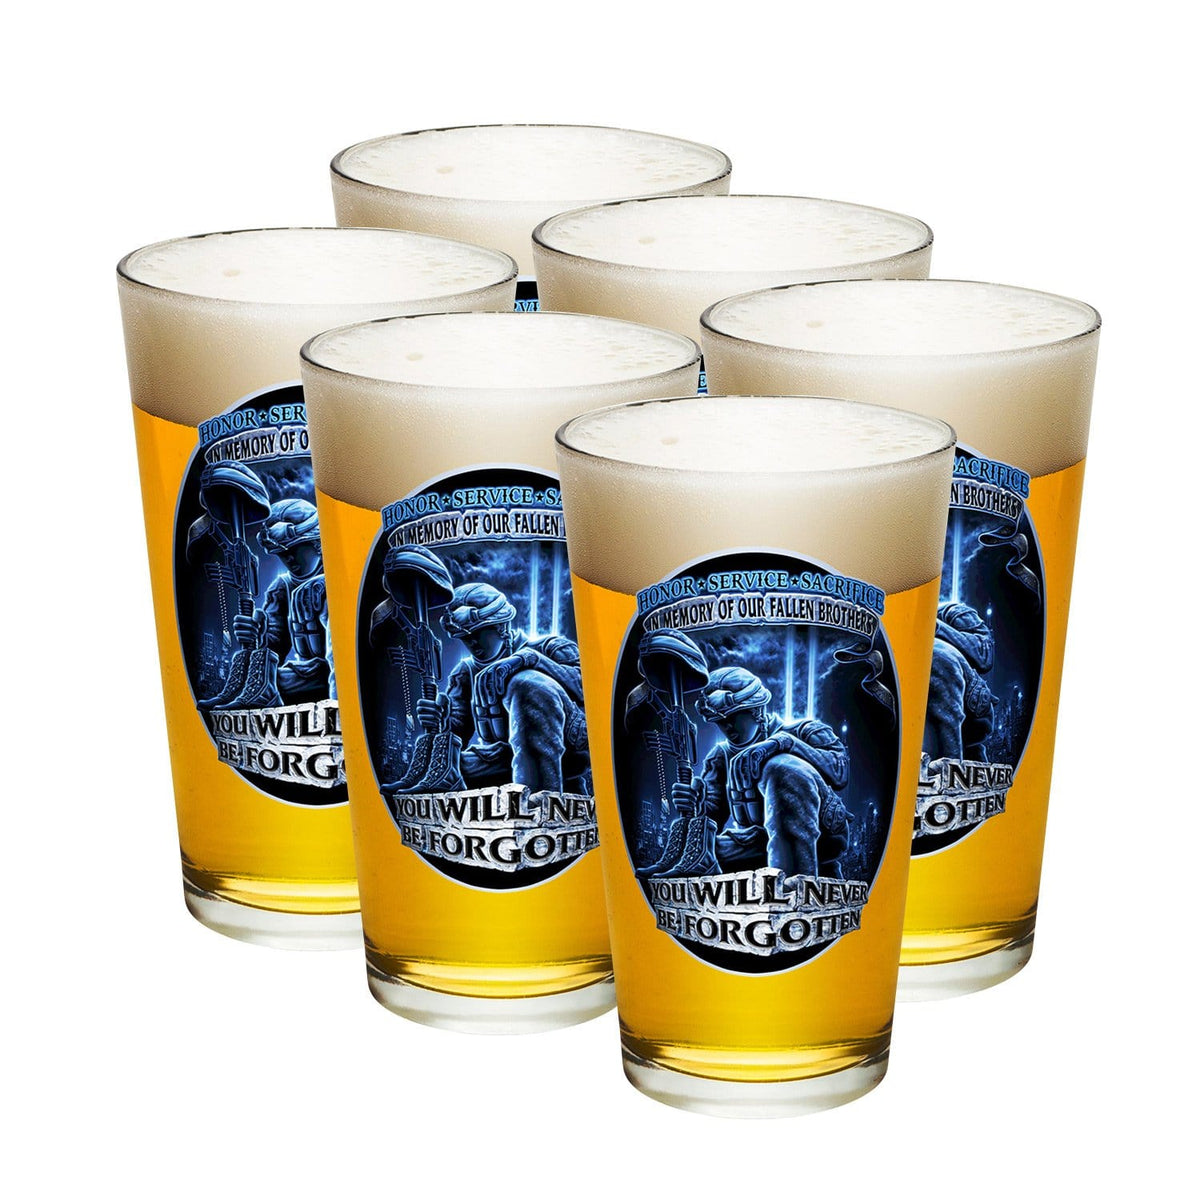 You Will Never Be Forgotten Pint Glass